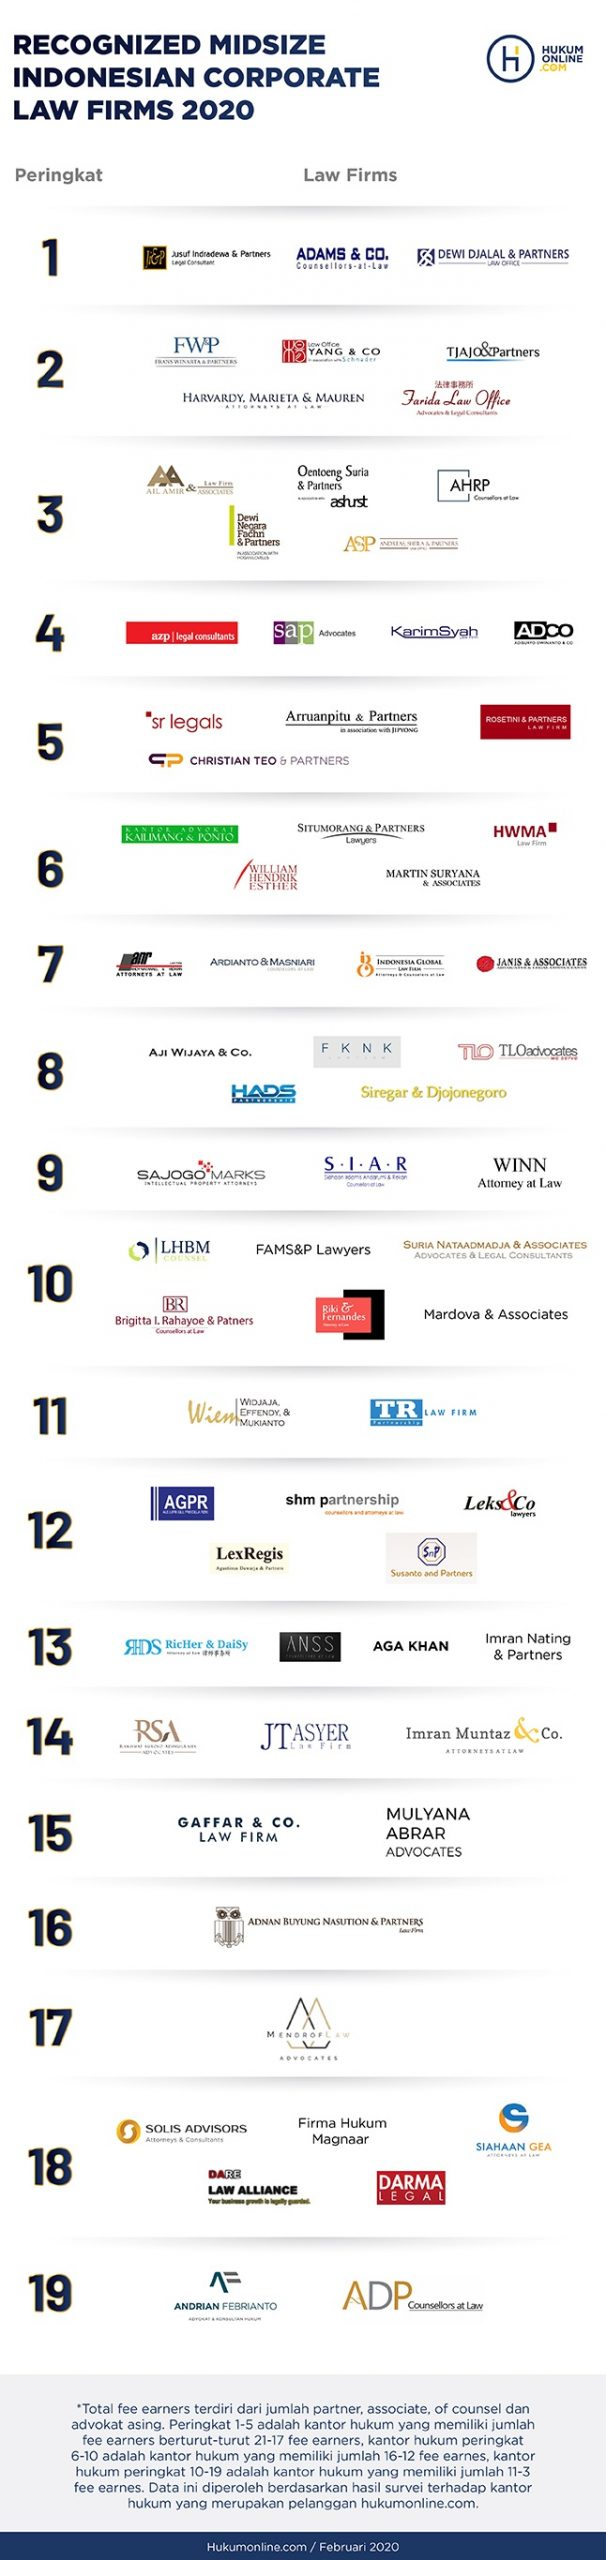 Recognized Midsize Indonesian Corporate Law Firms 2020